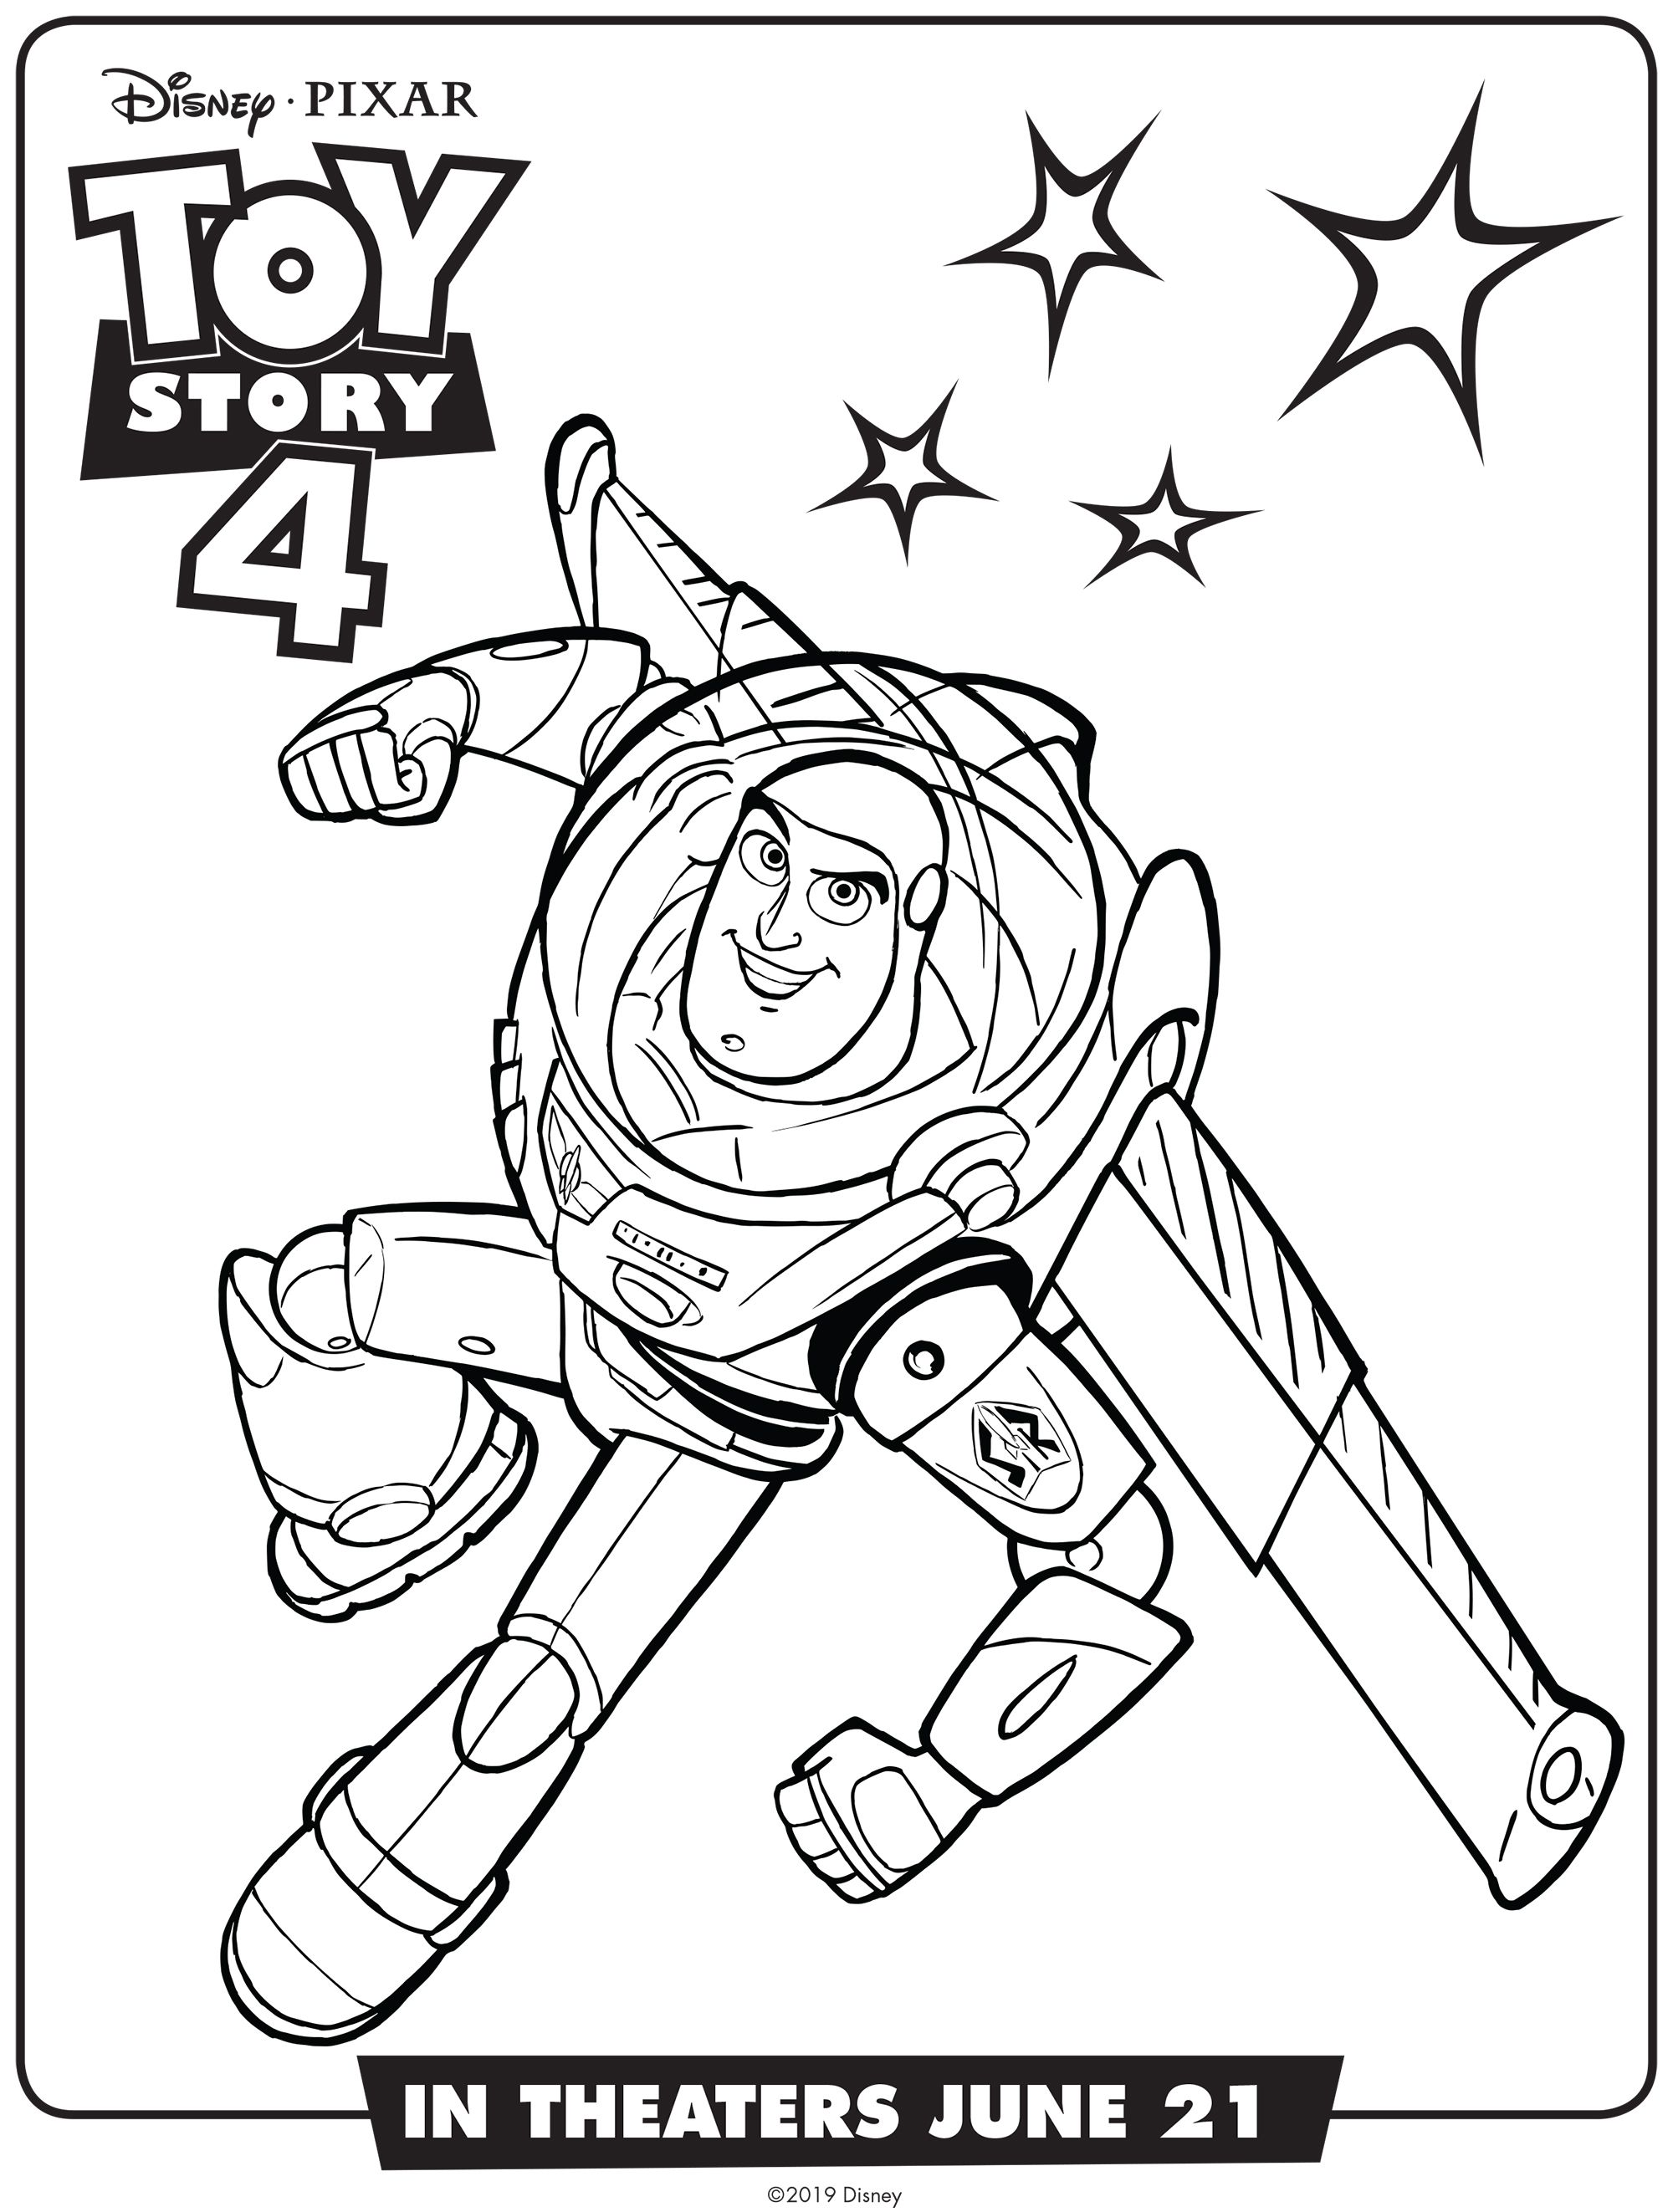 Buzz Lightyear Toy Story 4 Coloring Pages